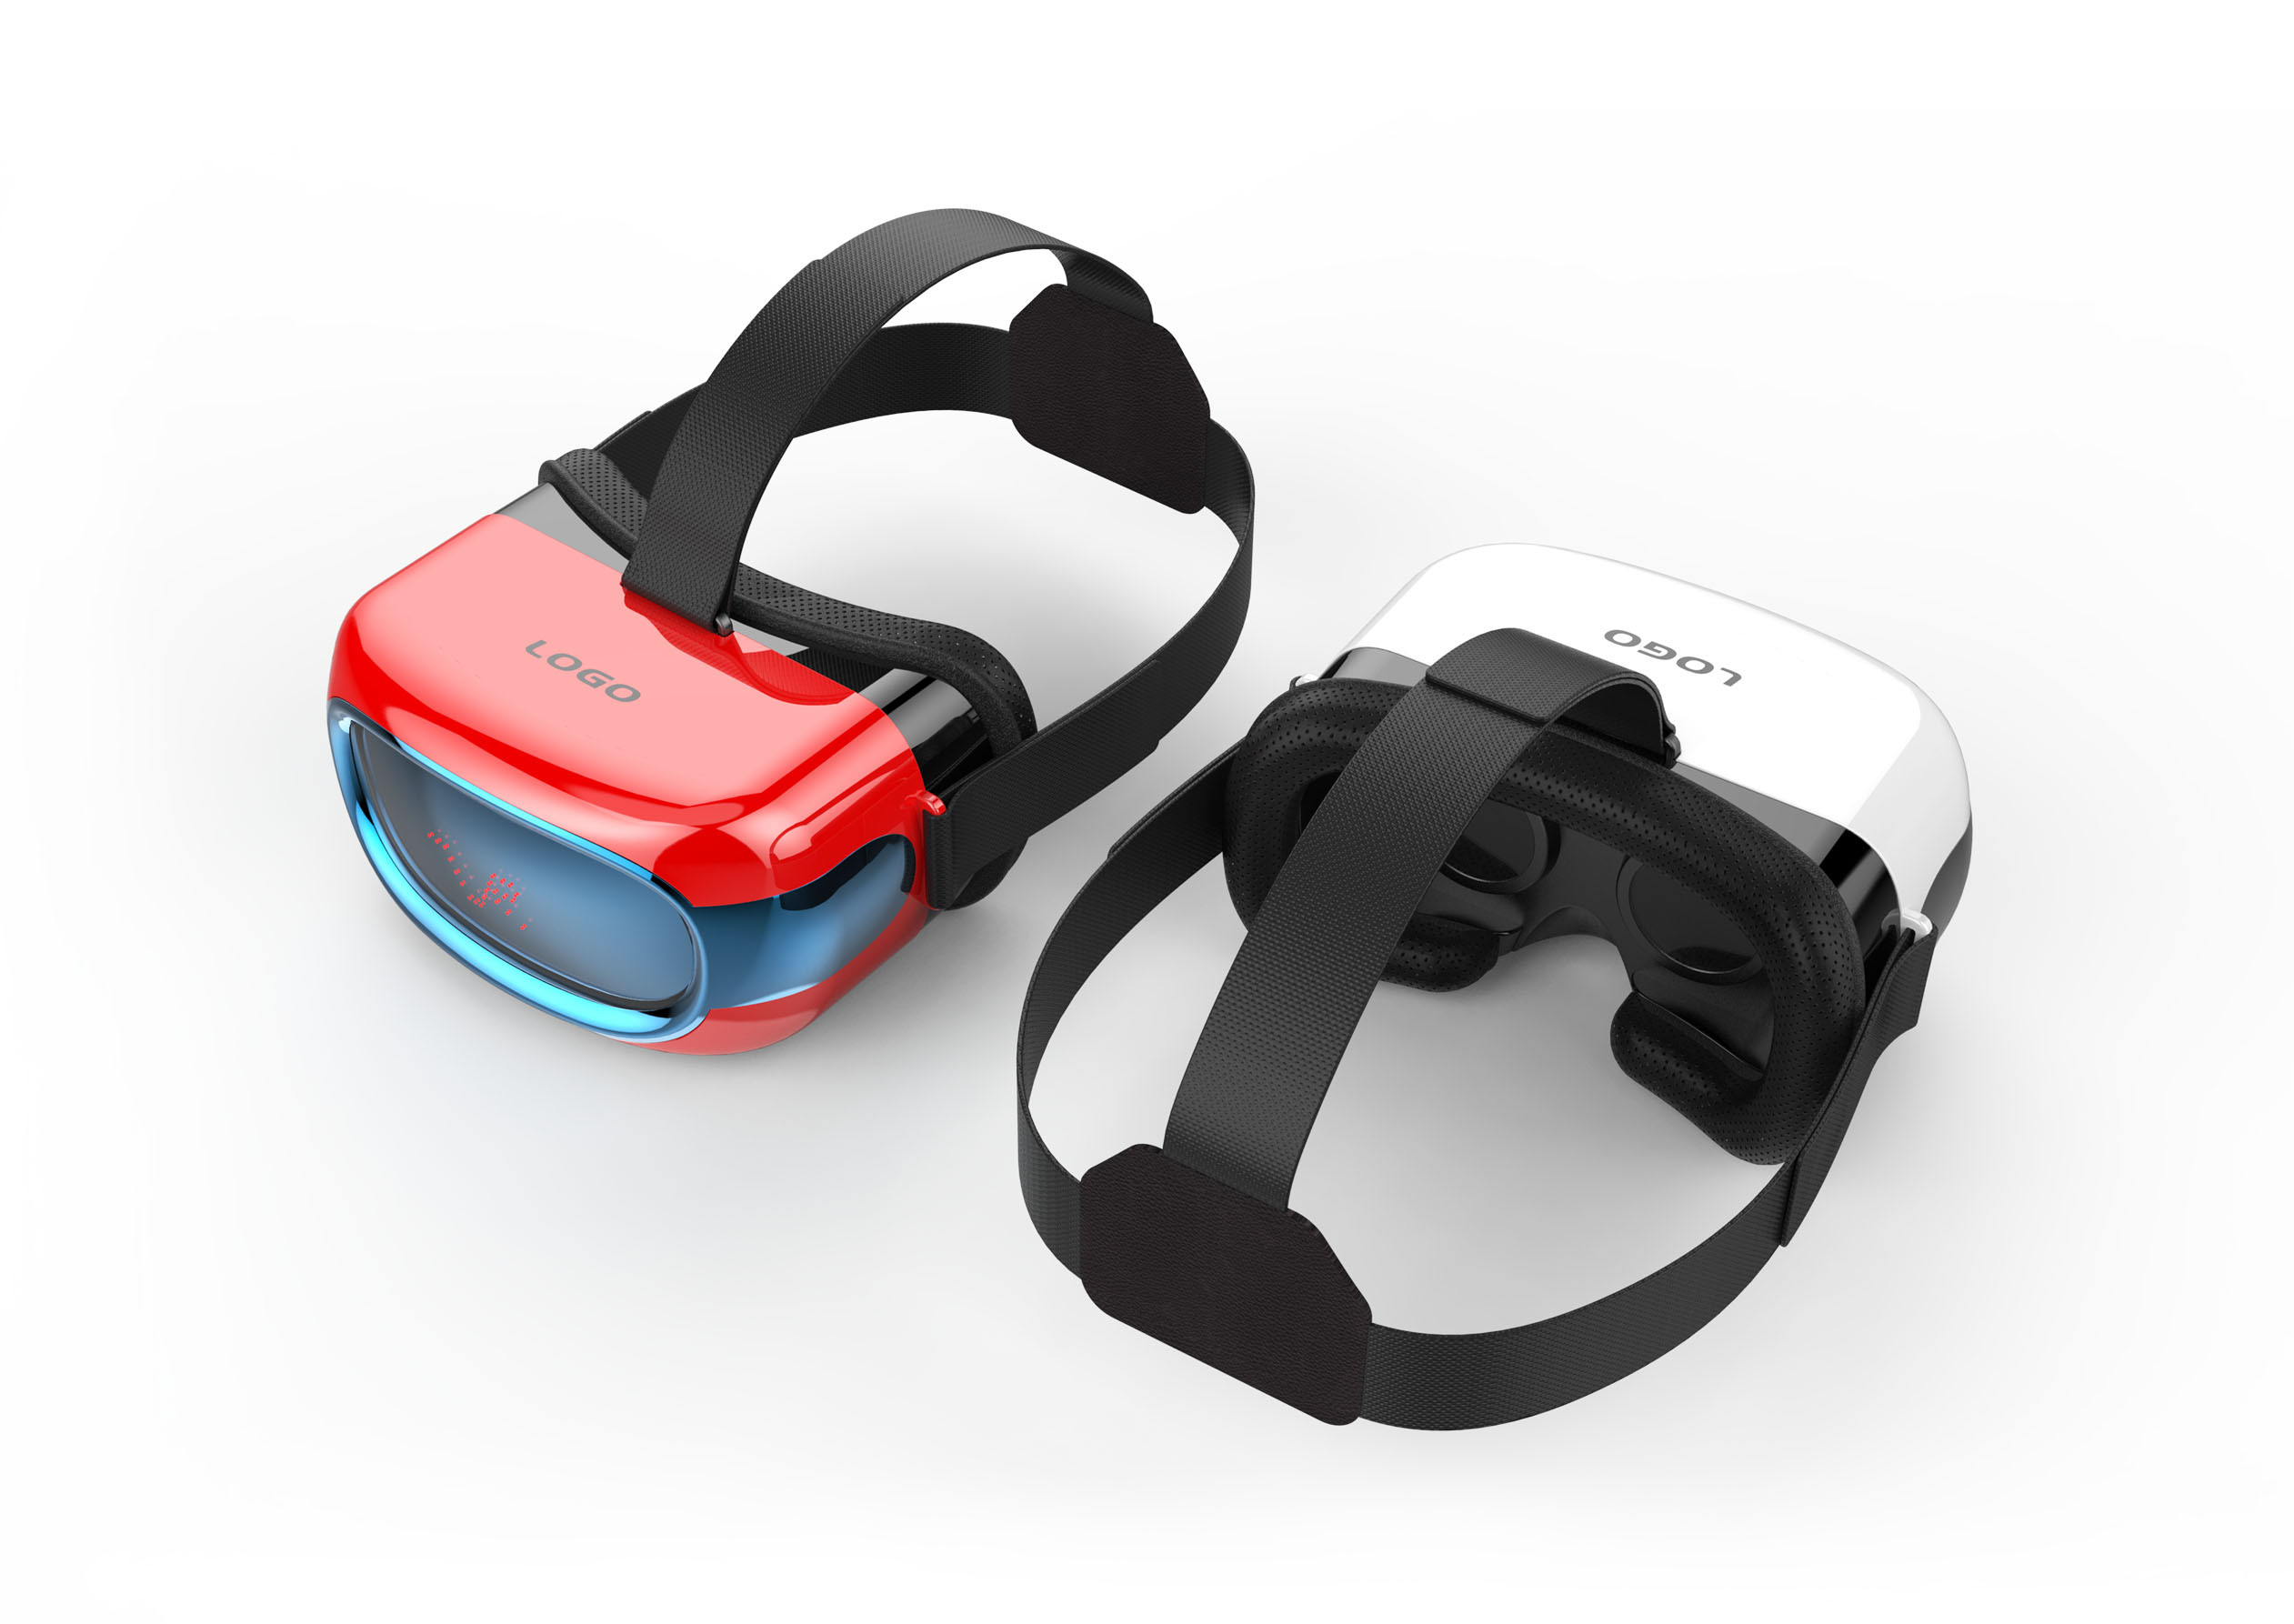 Vr Headset For Android Phone